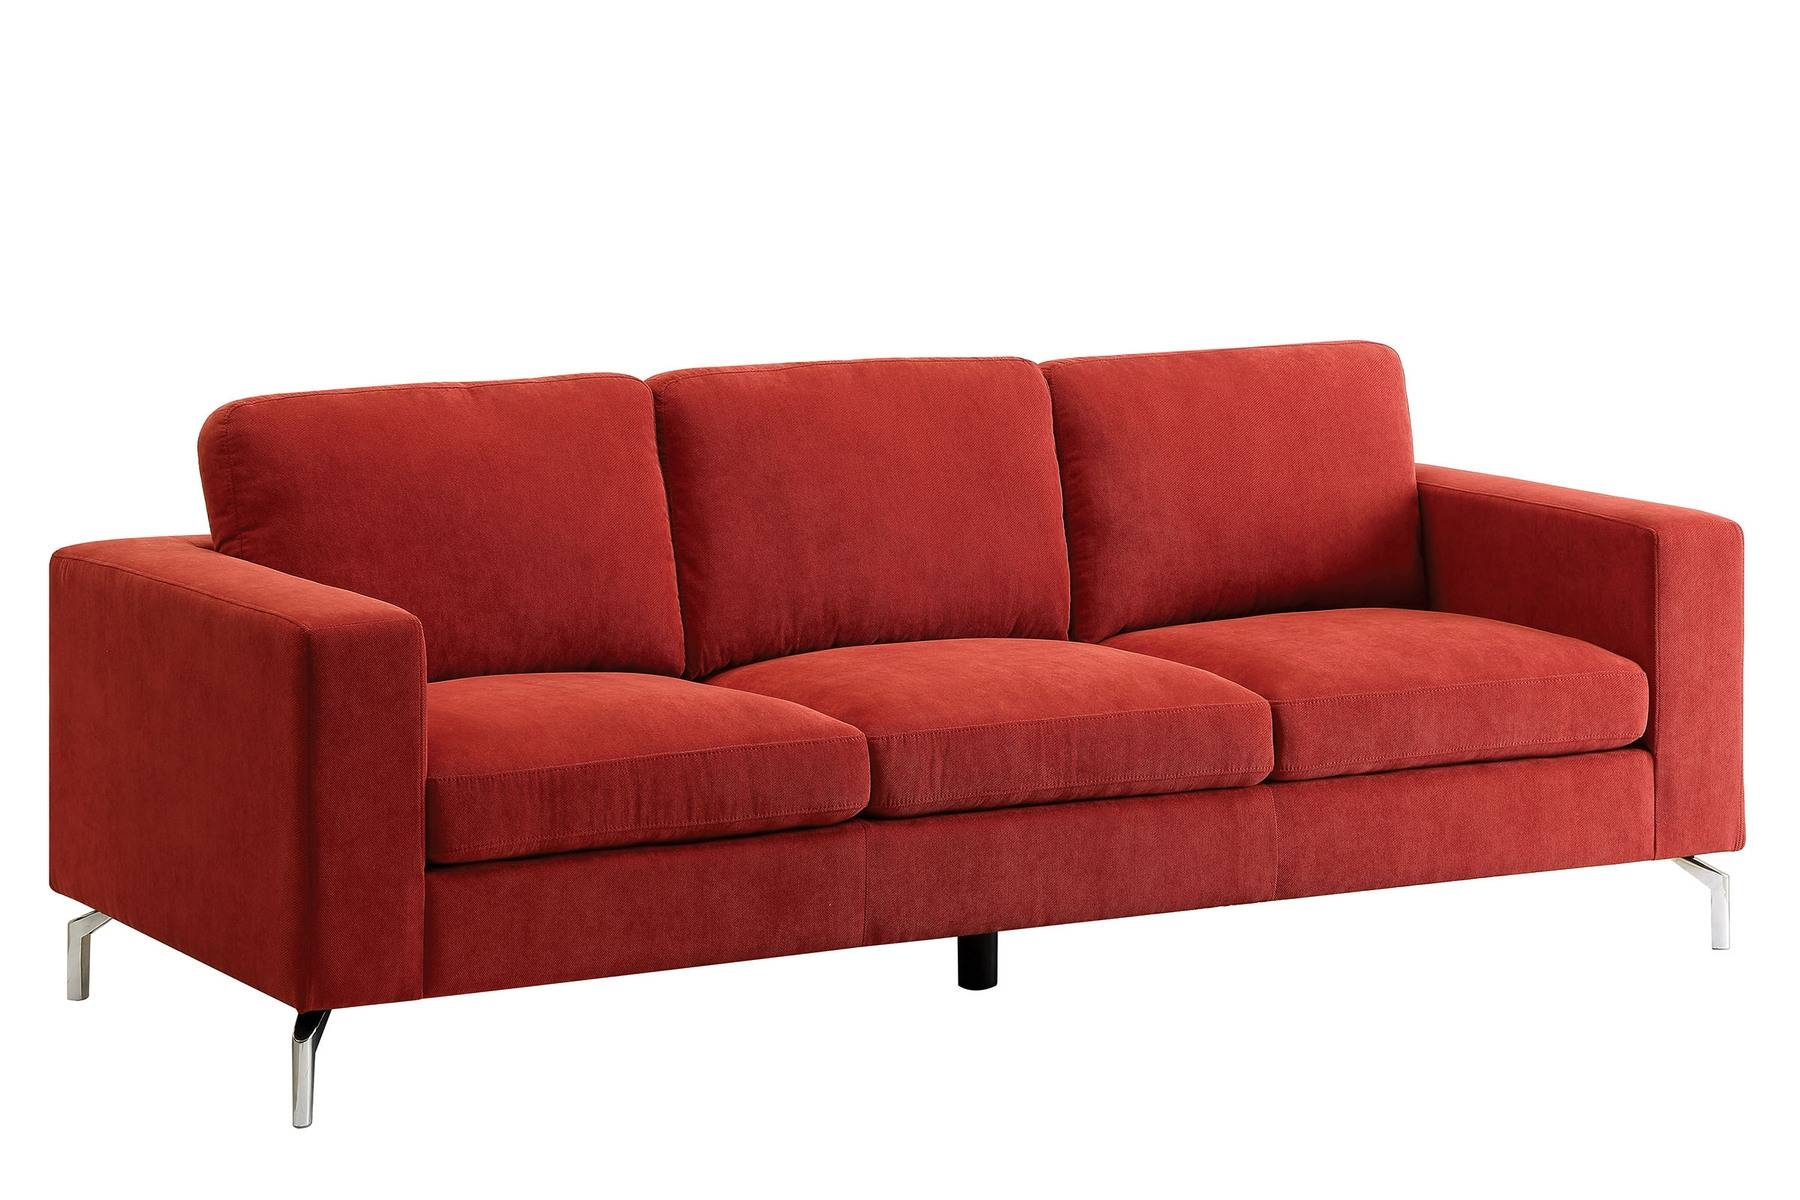 Kallie Sofa Cm6848-Sf Furniture Of America Fabric Sofas At Comfyco in Fabric Sofas (Image 21 of 30)